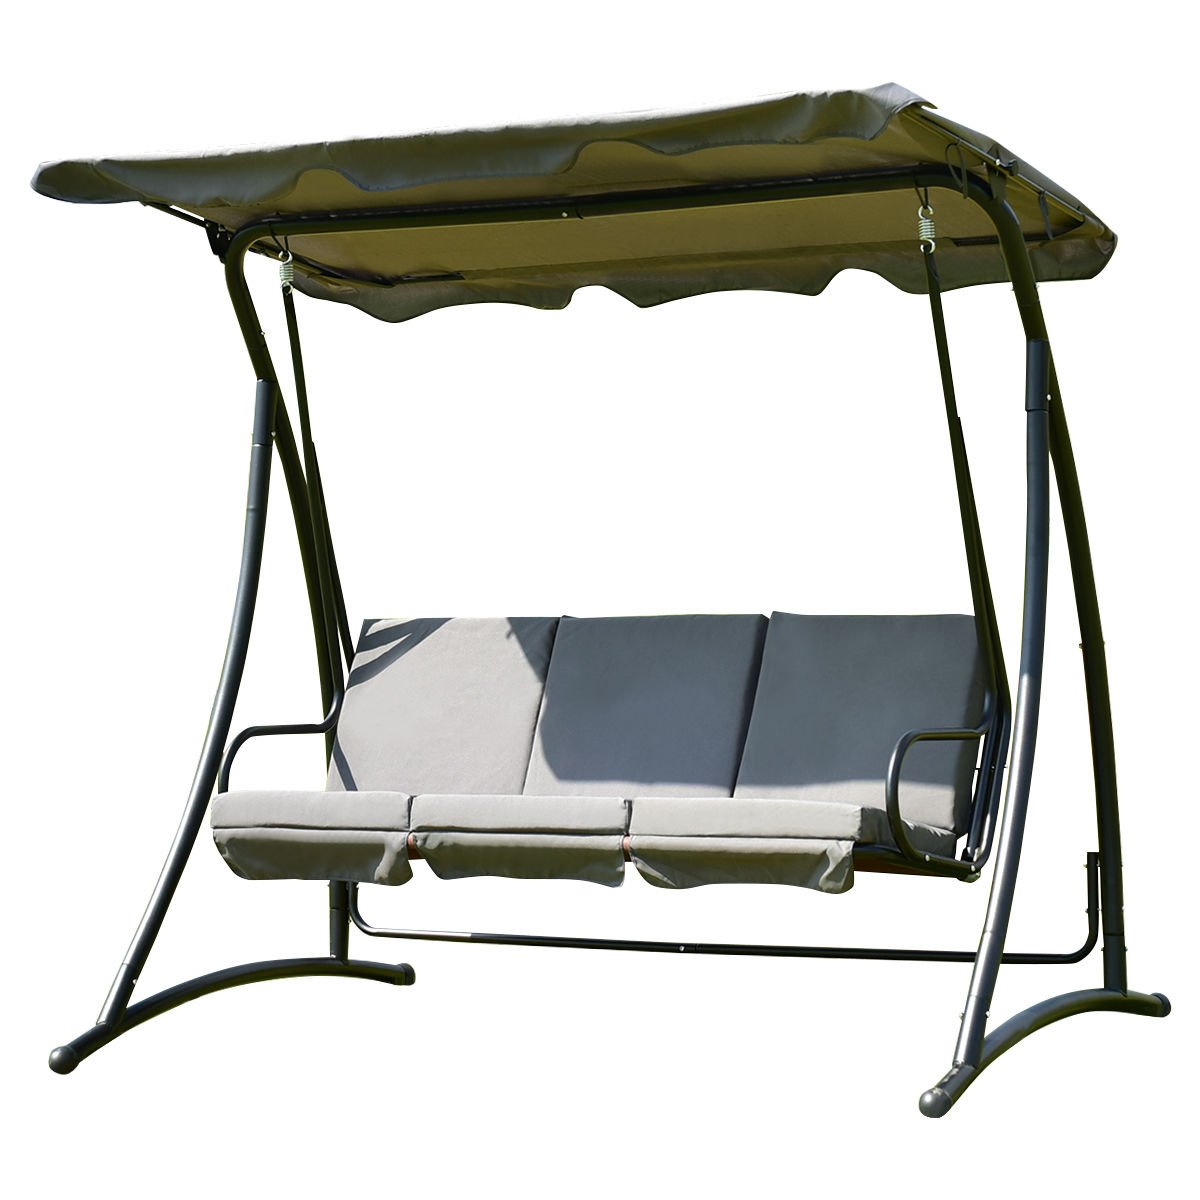 Outdoor Patio Swing Canopy 3 Person Awning Yard Furniture Hammock Steel Gray